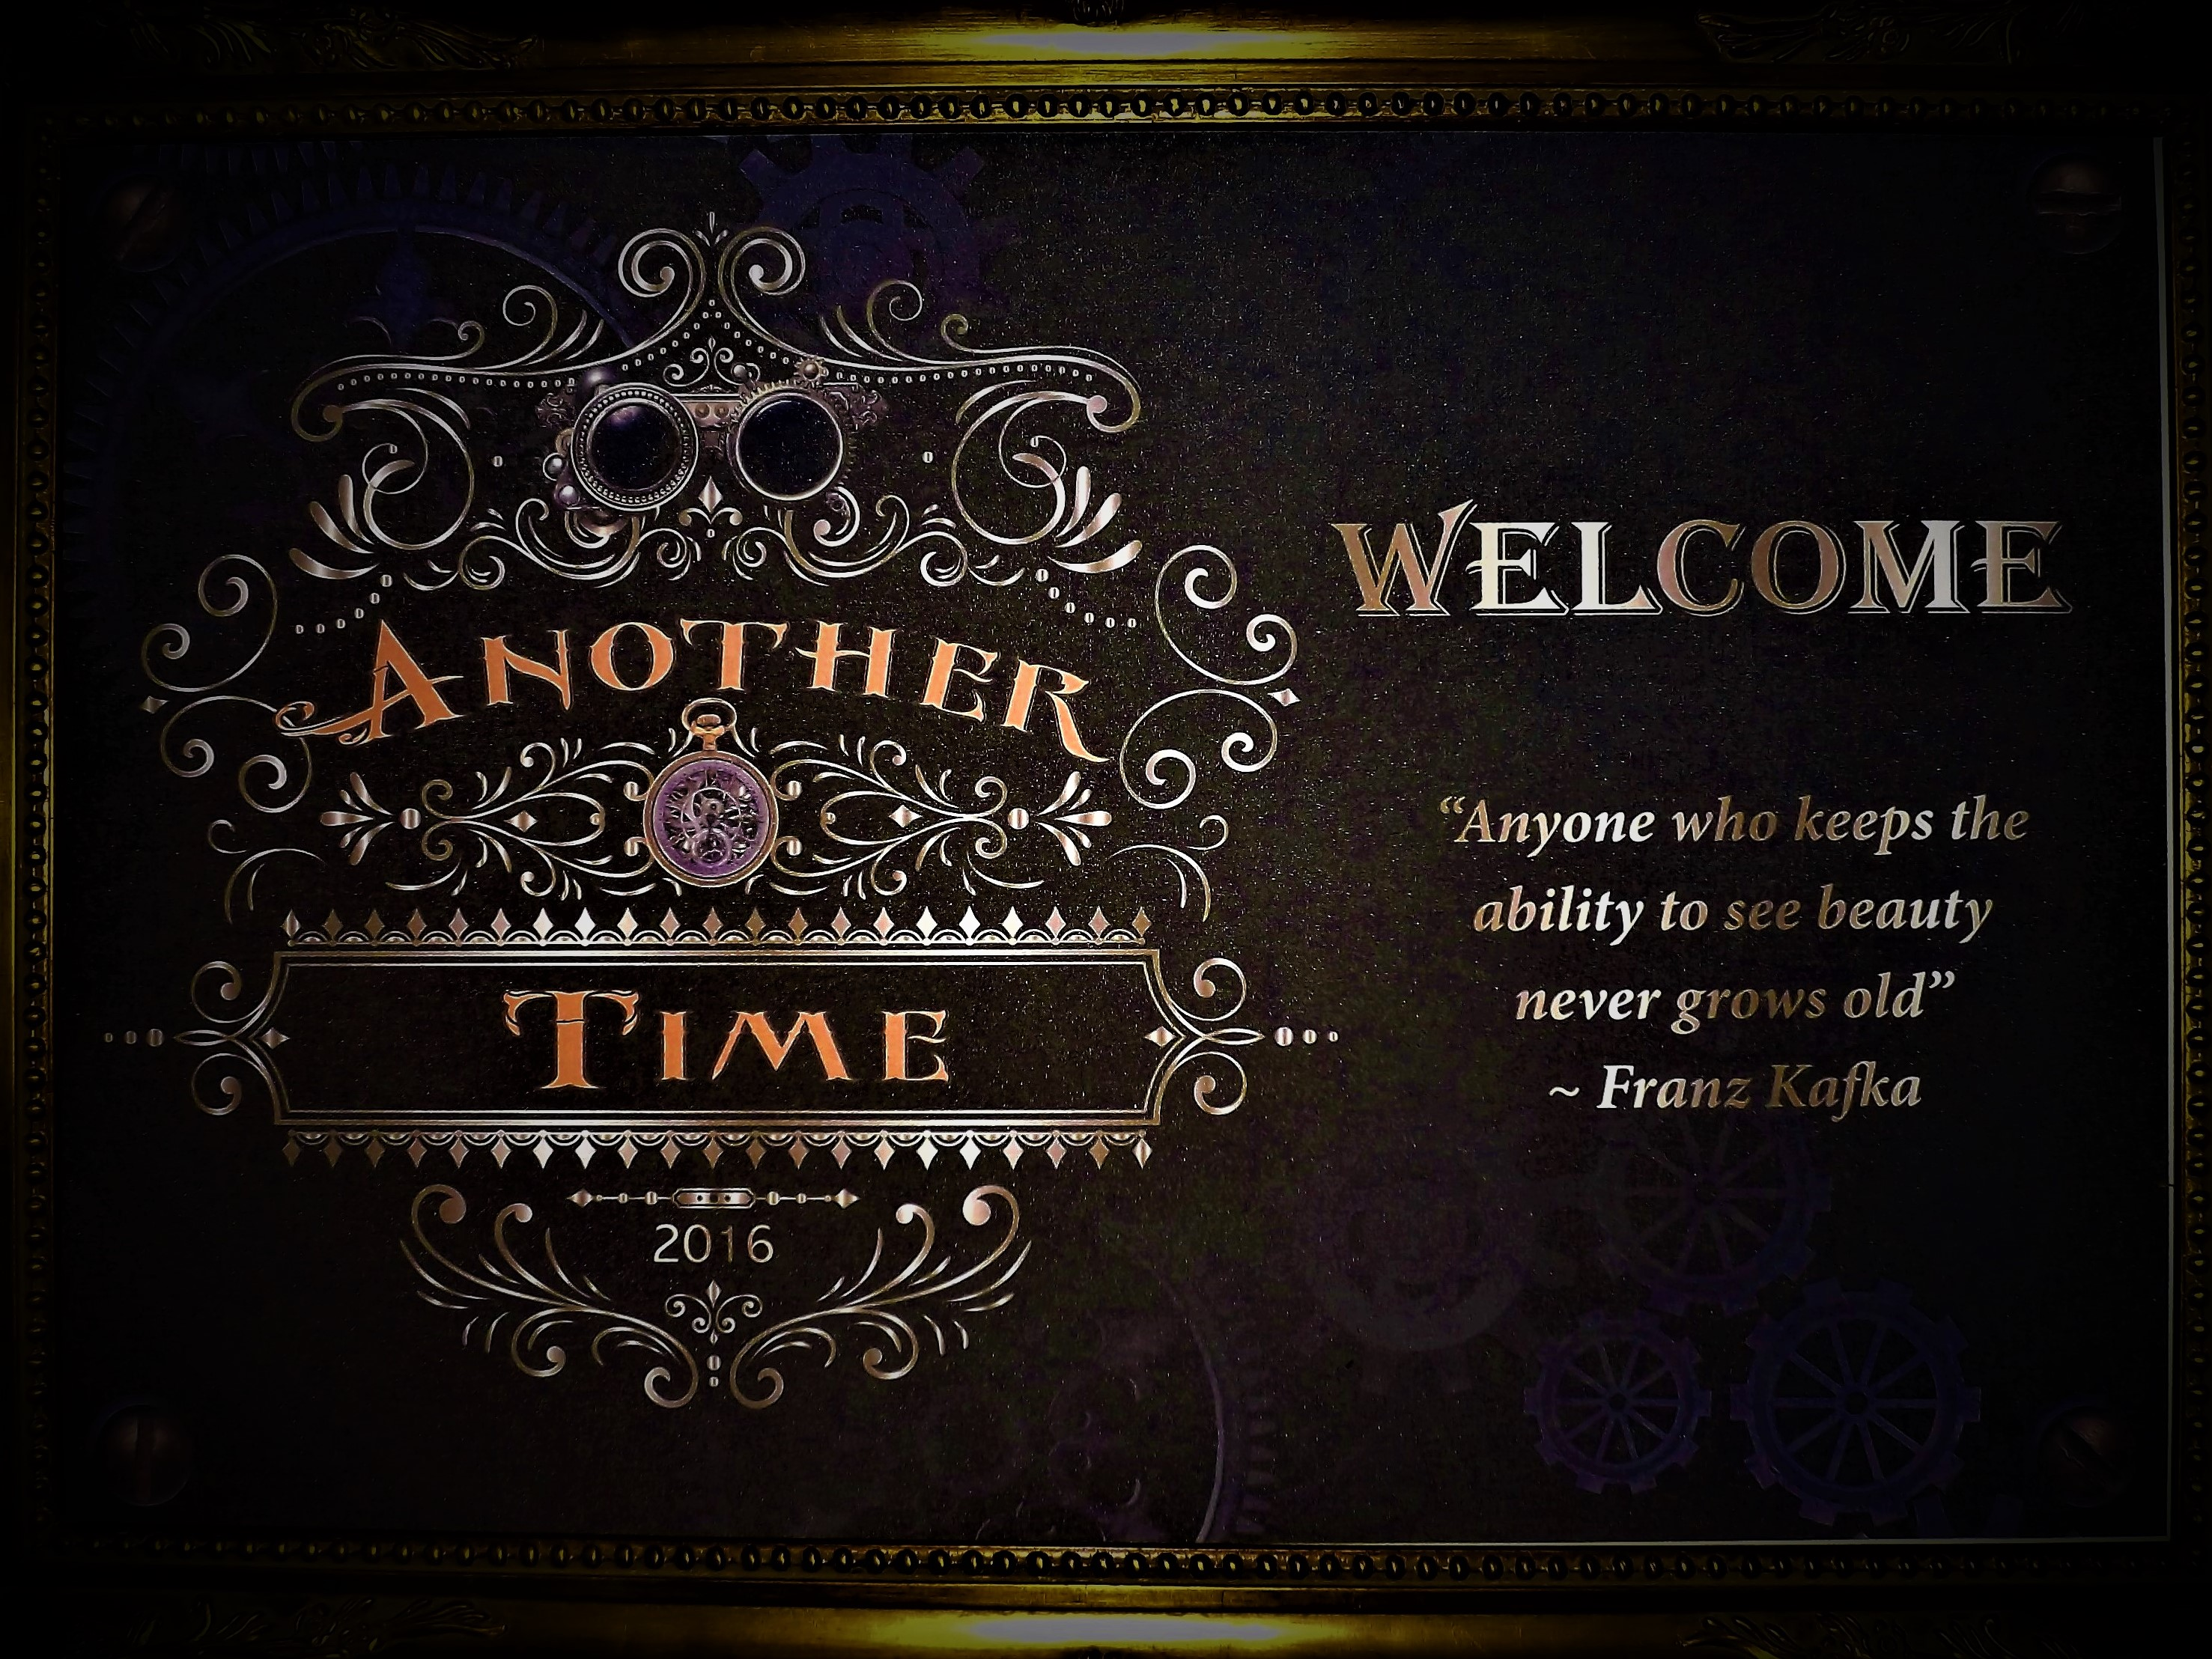 Welcome to ANOTHER TIME!